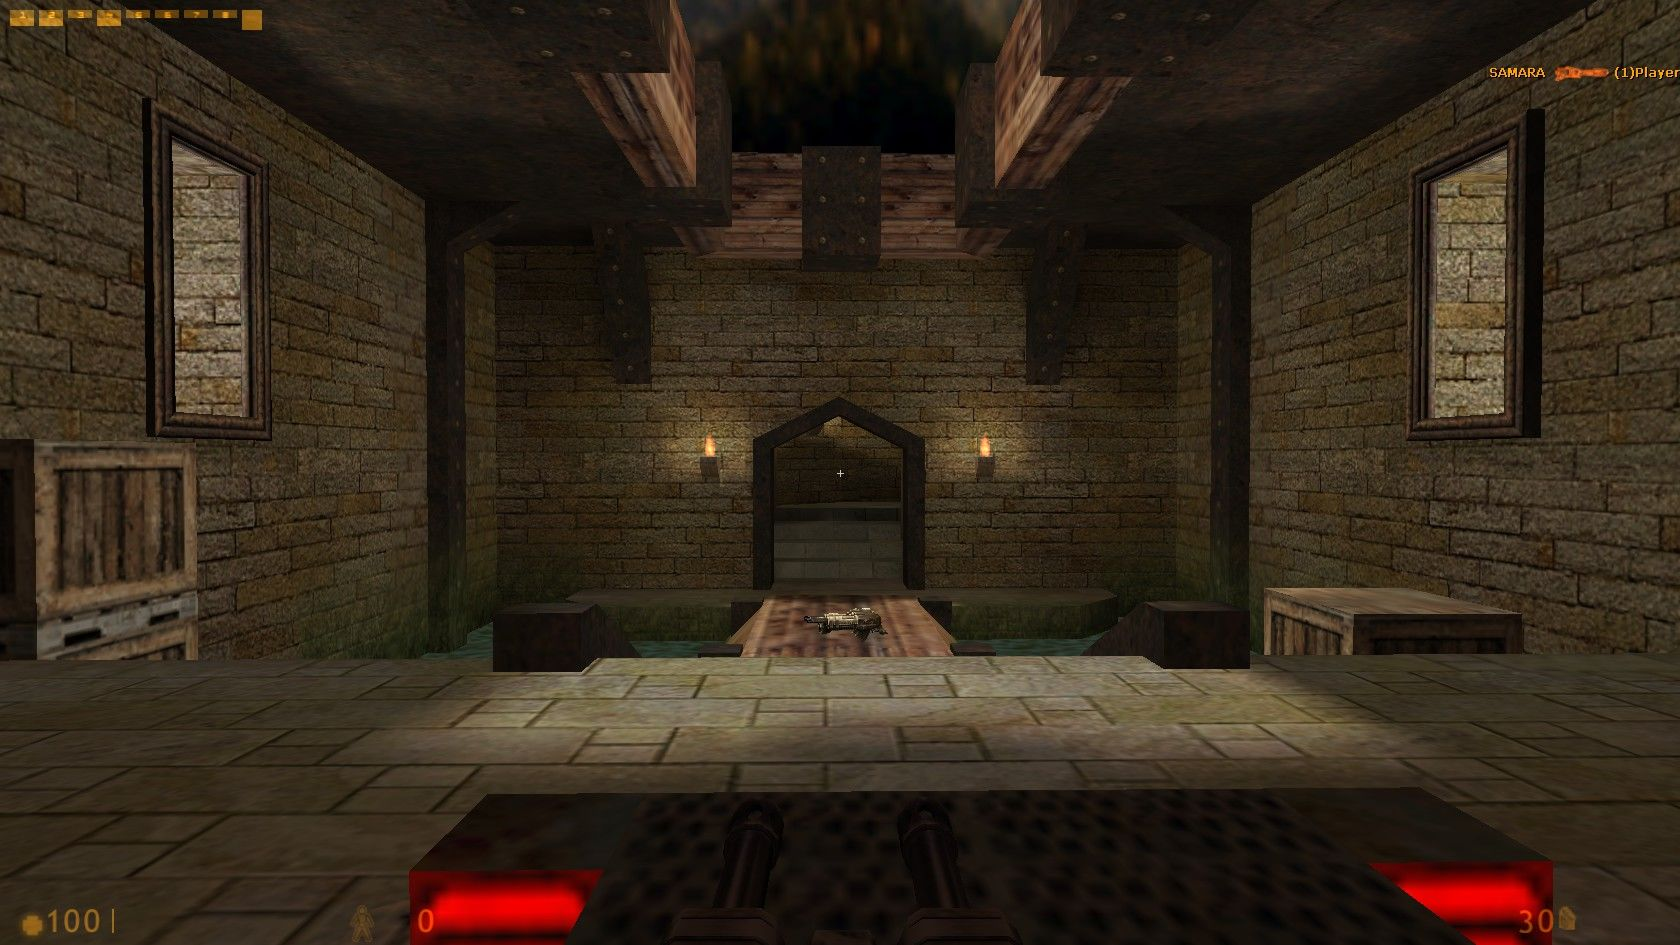 Deathmatch Classic Windows This map is directly modelled after one of the early Single Player stages from Quake